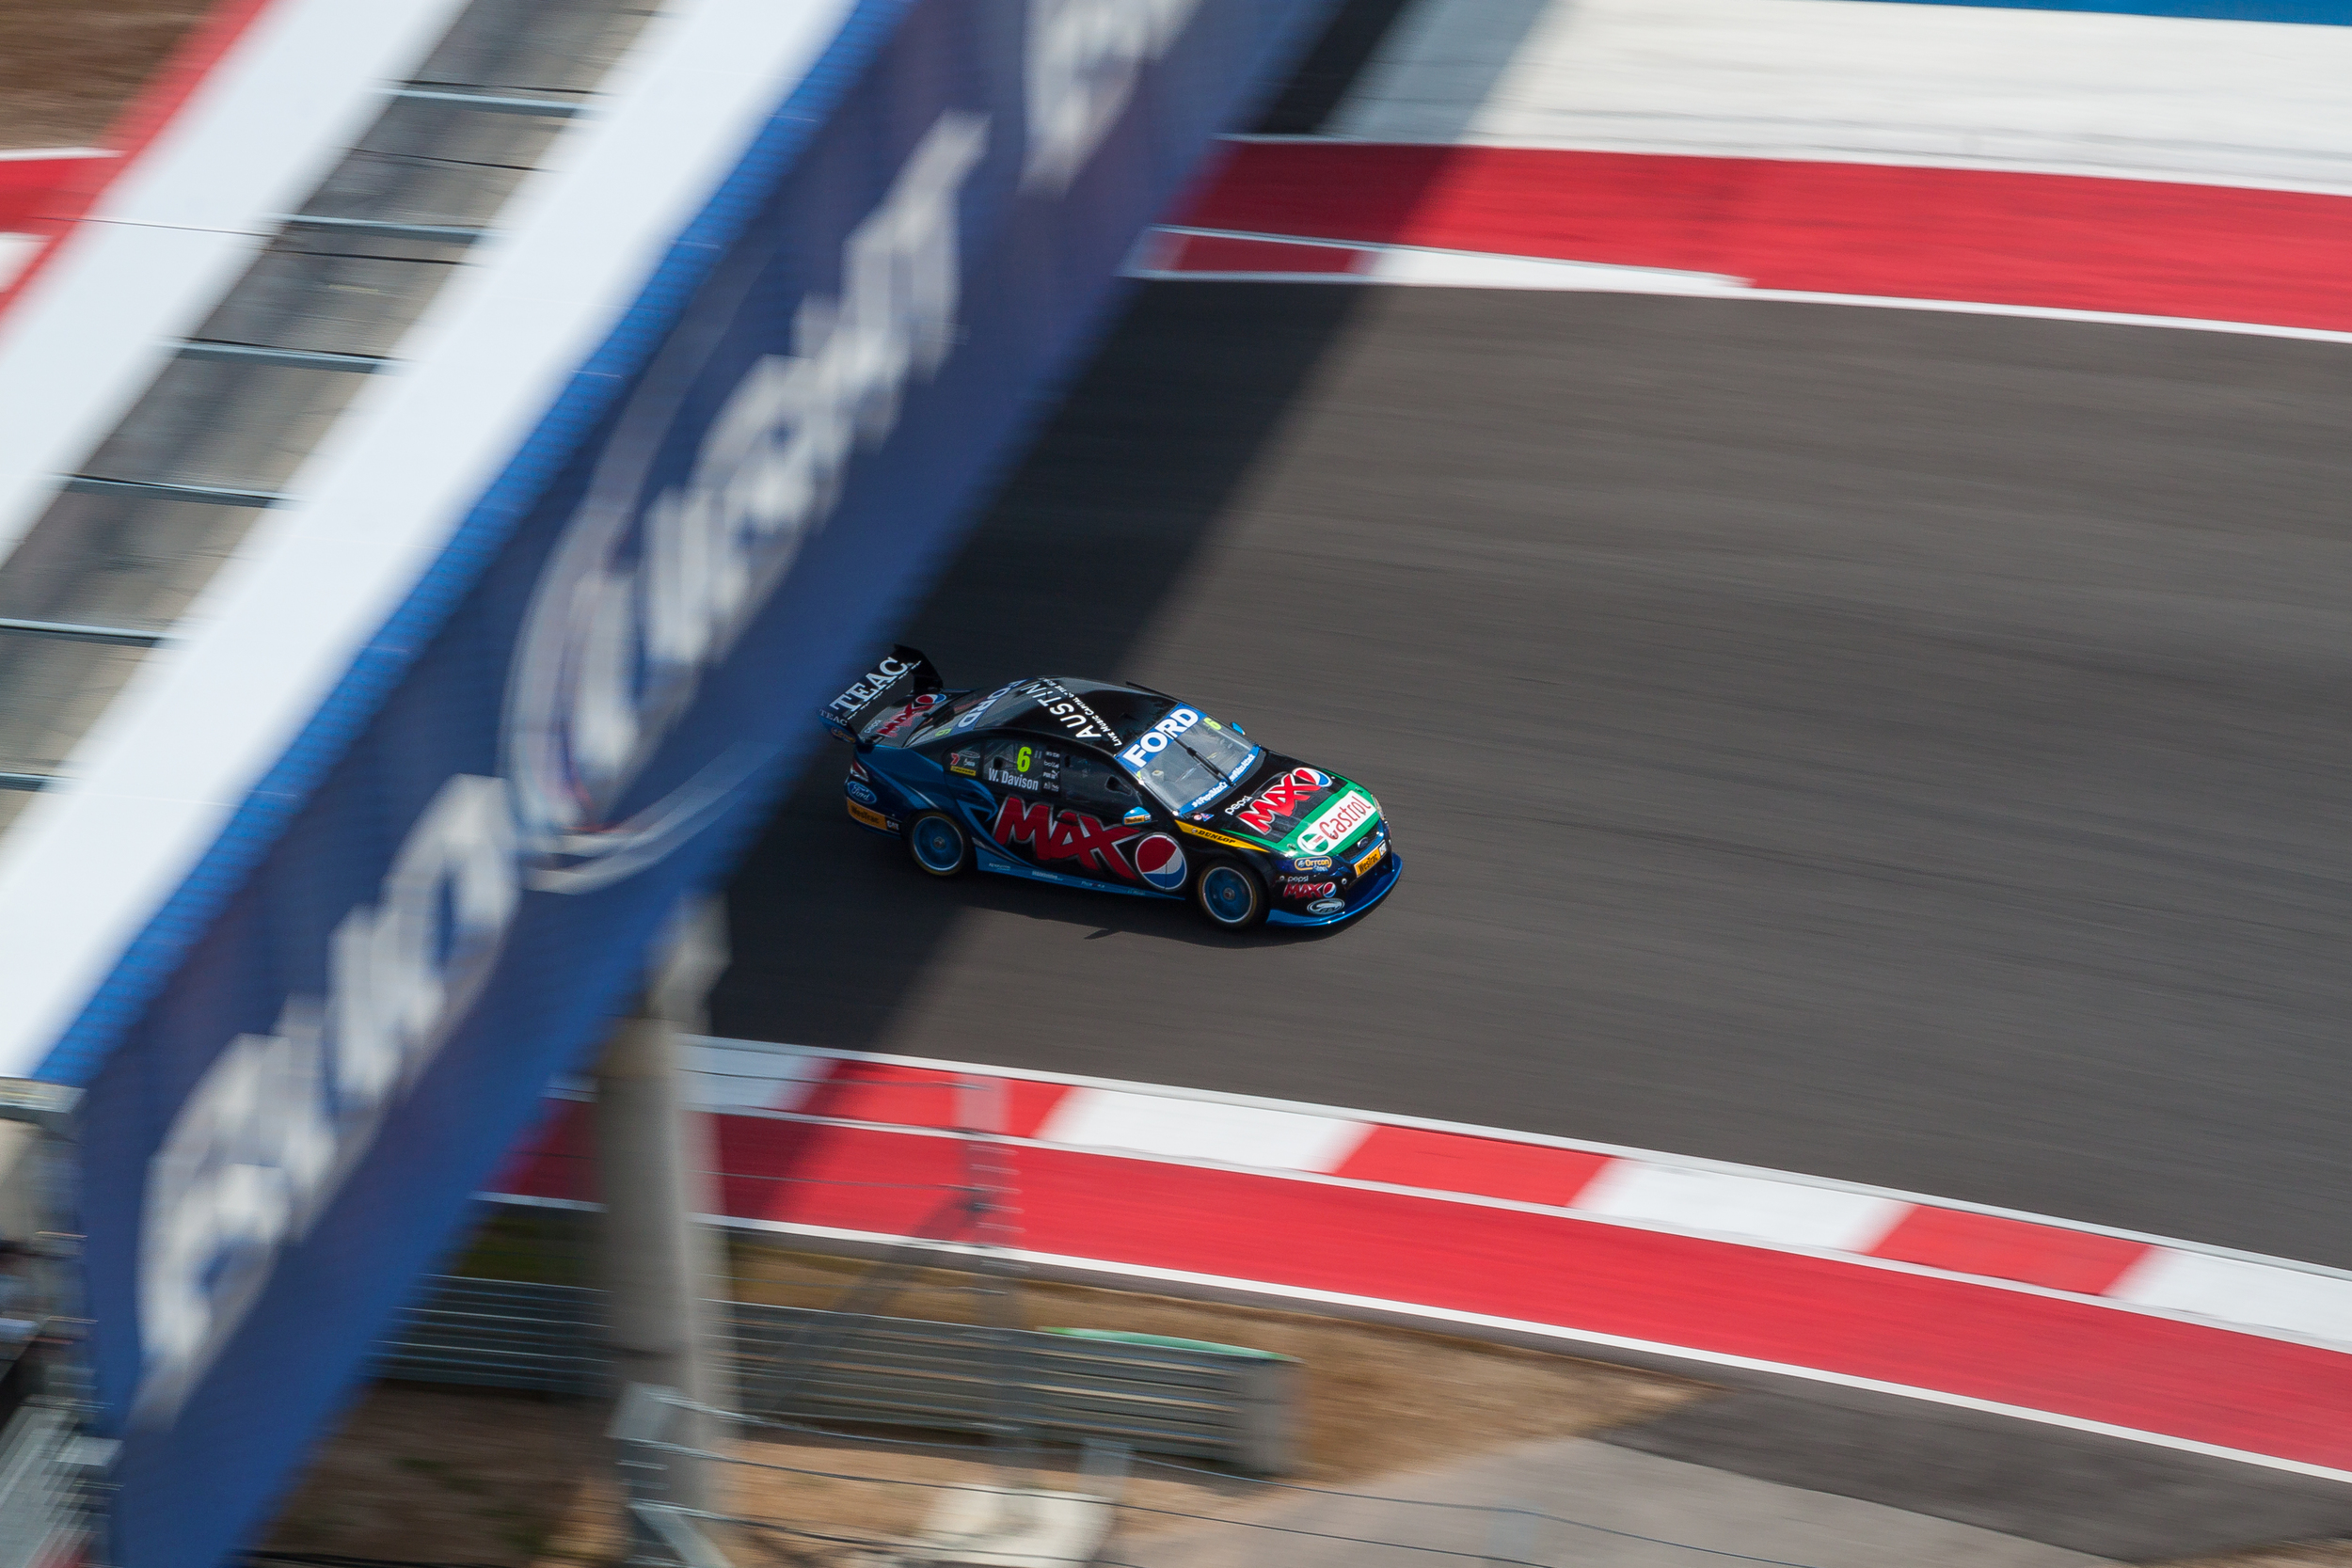 #6 Davison hunts down the shade on a scorching weekend at Circuit of the Americas Race Track in Austin, Texas.